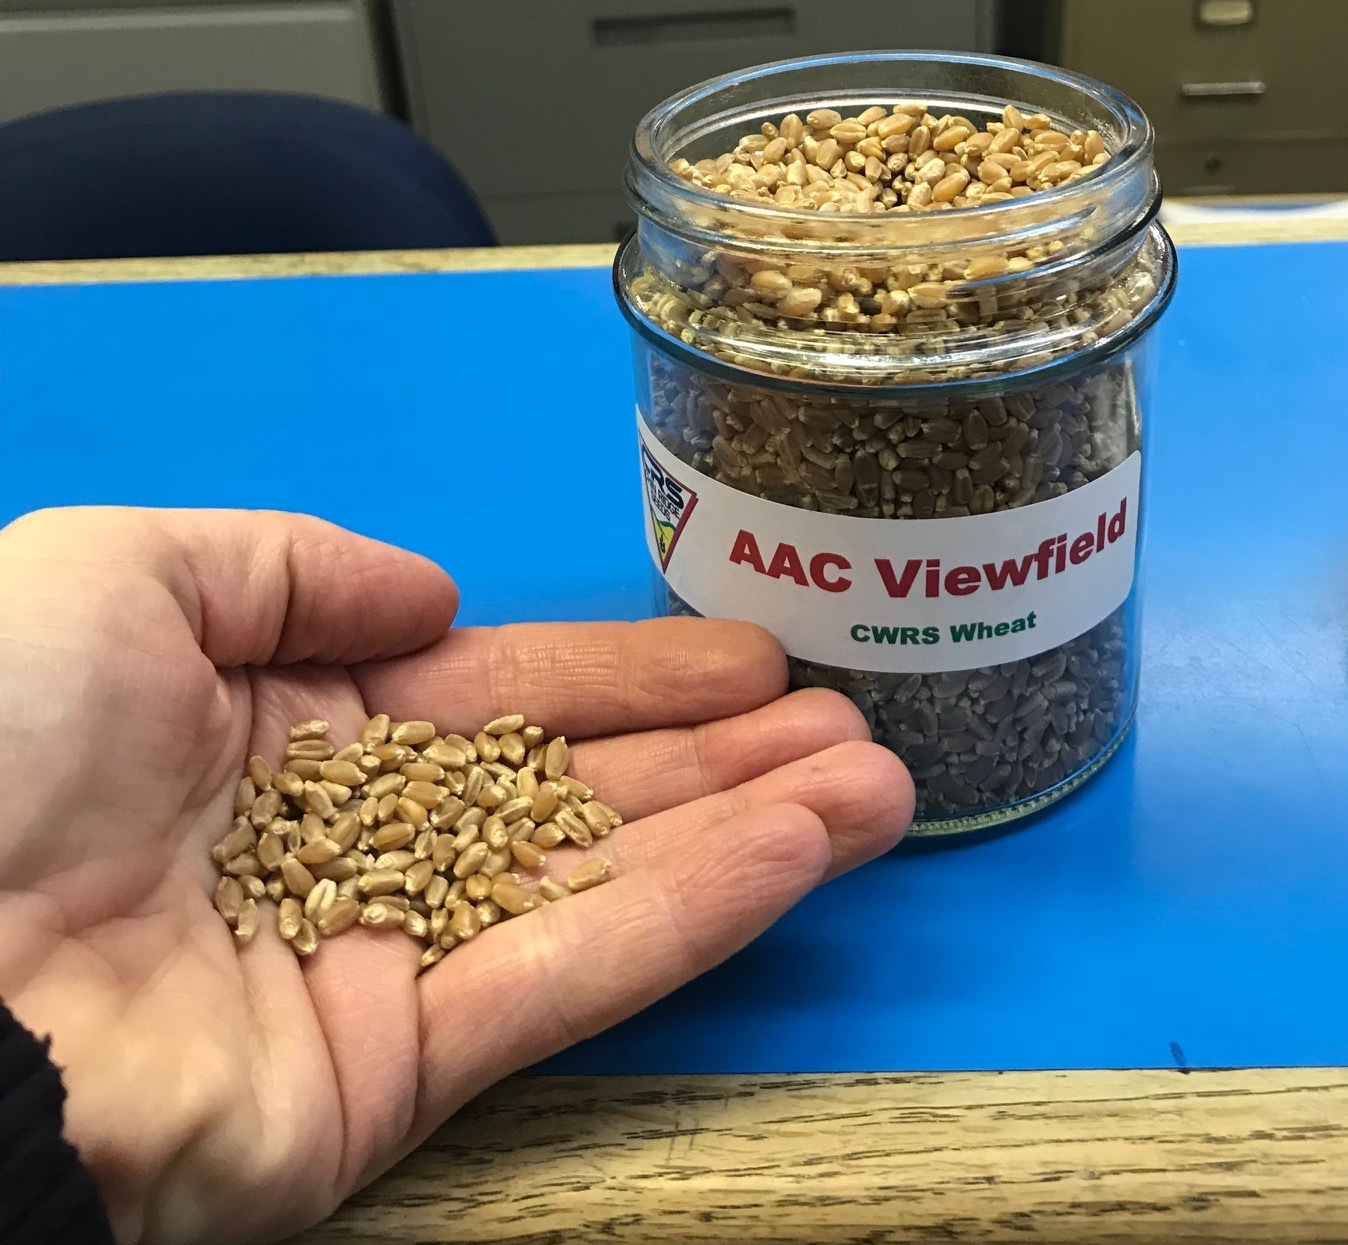 AAC Viewfield Wheat